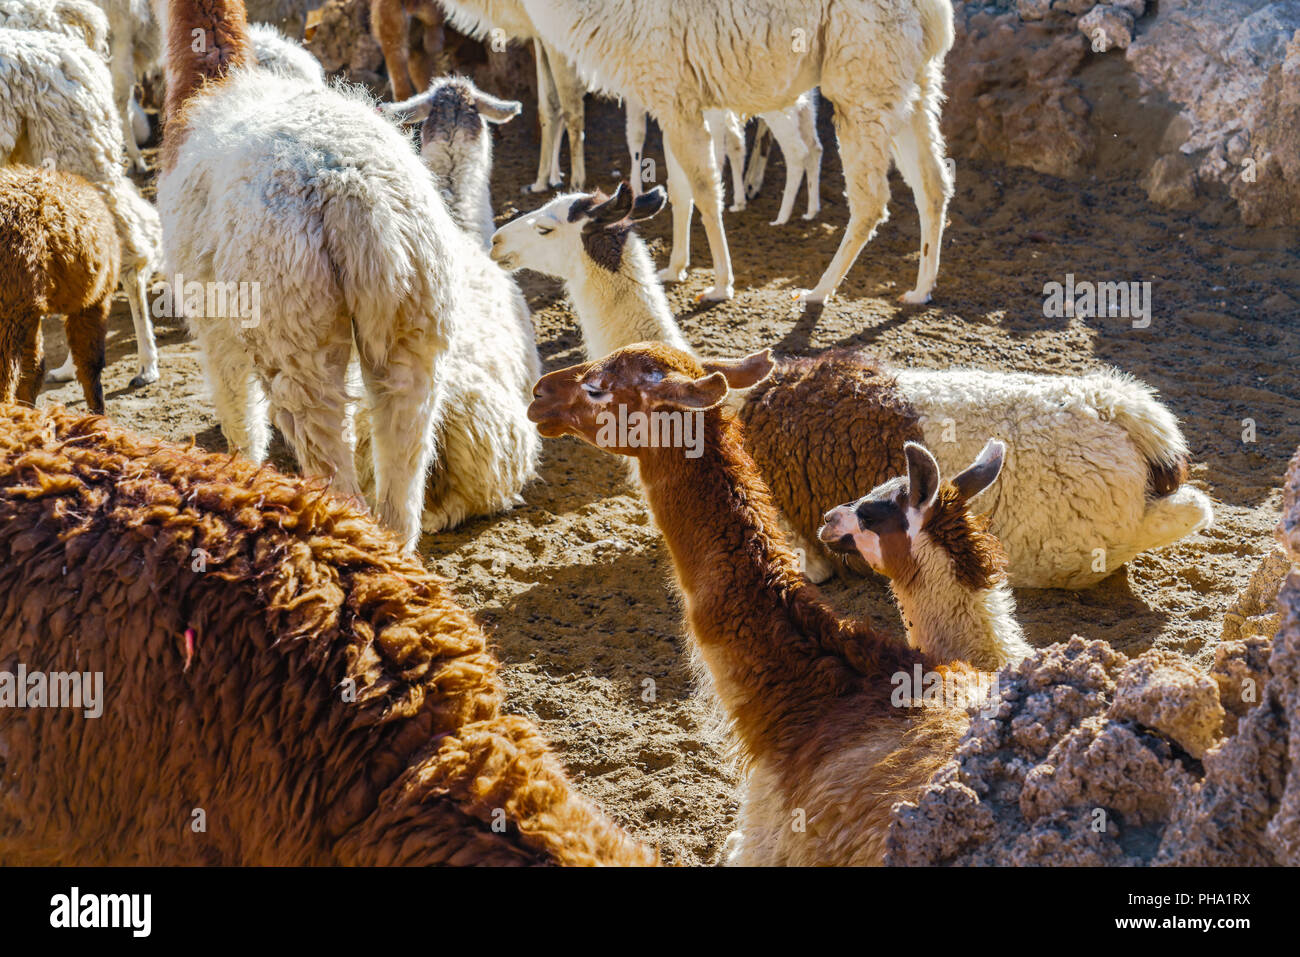 Llama resting on the ground at the southern altiplano - Stock Image